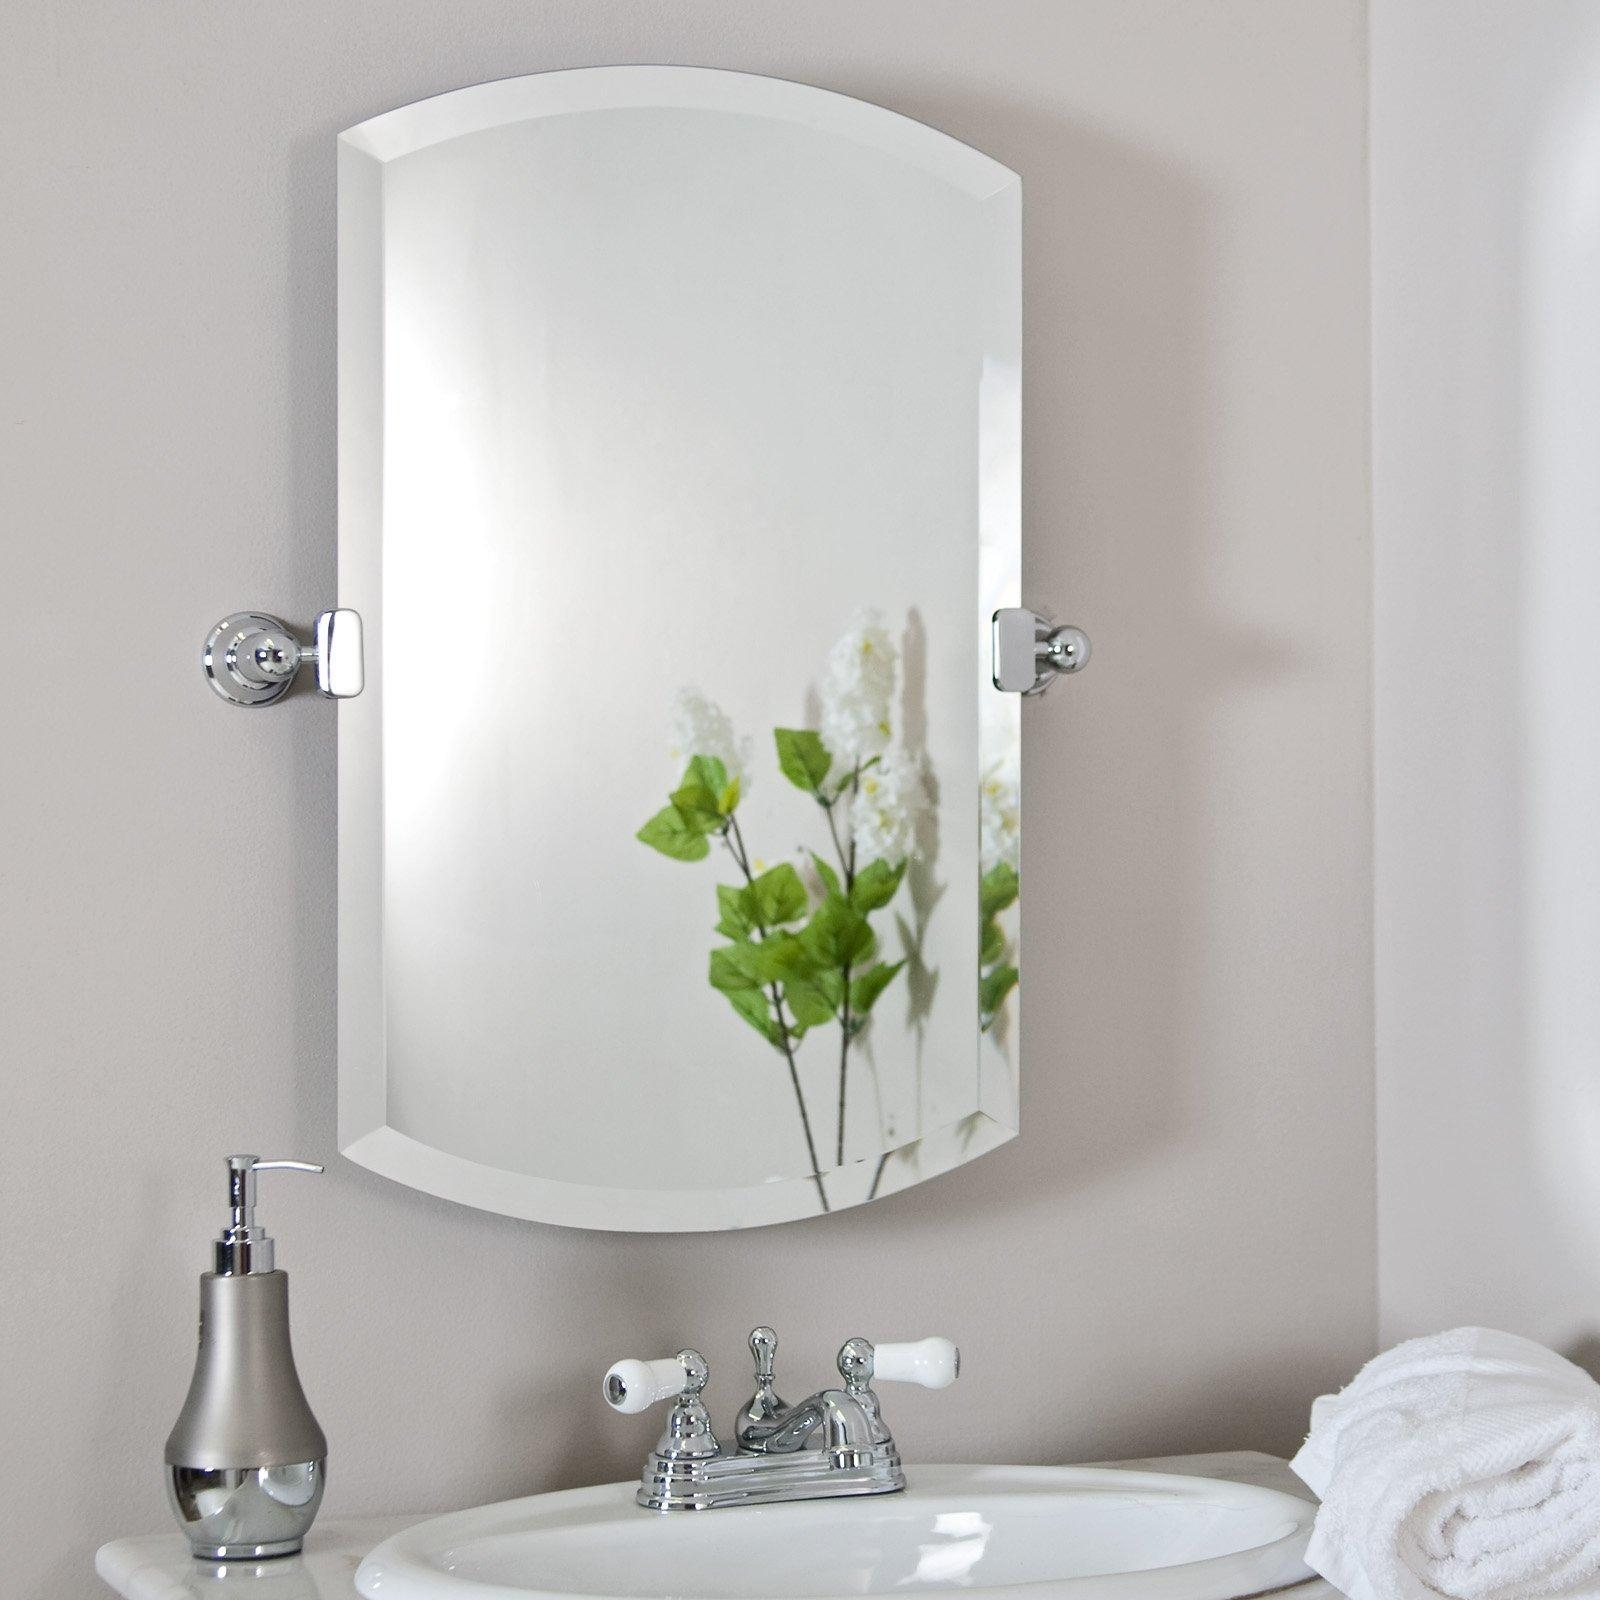 Bathrooms Design : Easy Decorative Mirrors For Bathroom Nice L With Regard To Decorative Mirrors For Bathroom Vanity (Image 12 of 20)